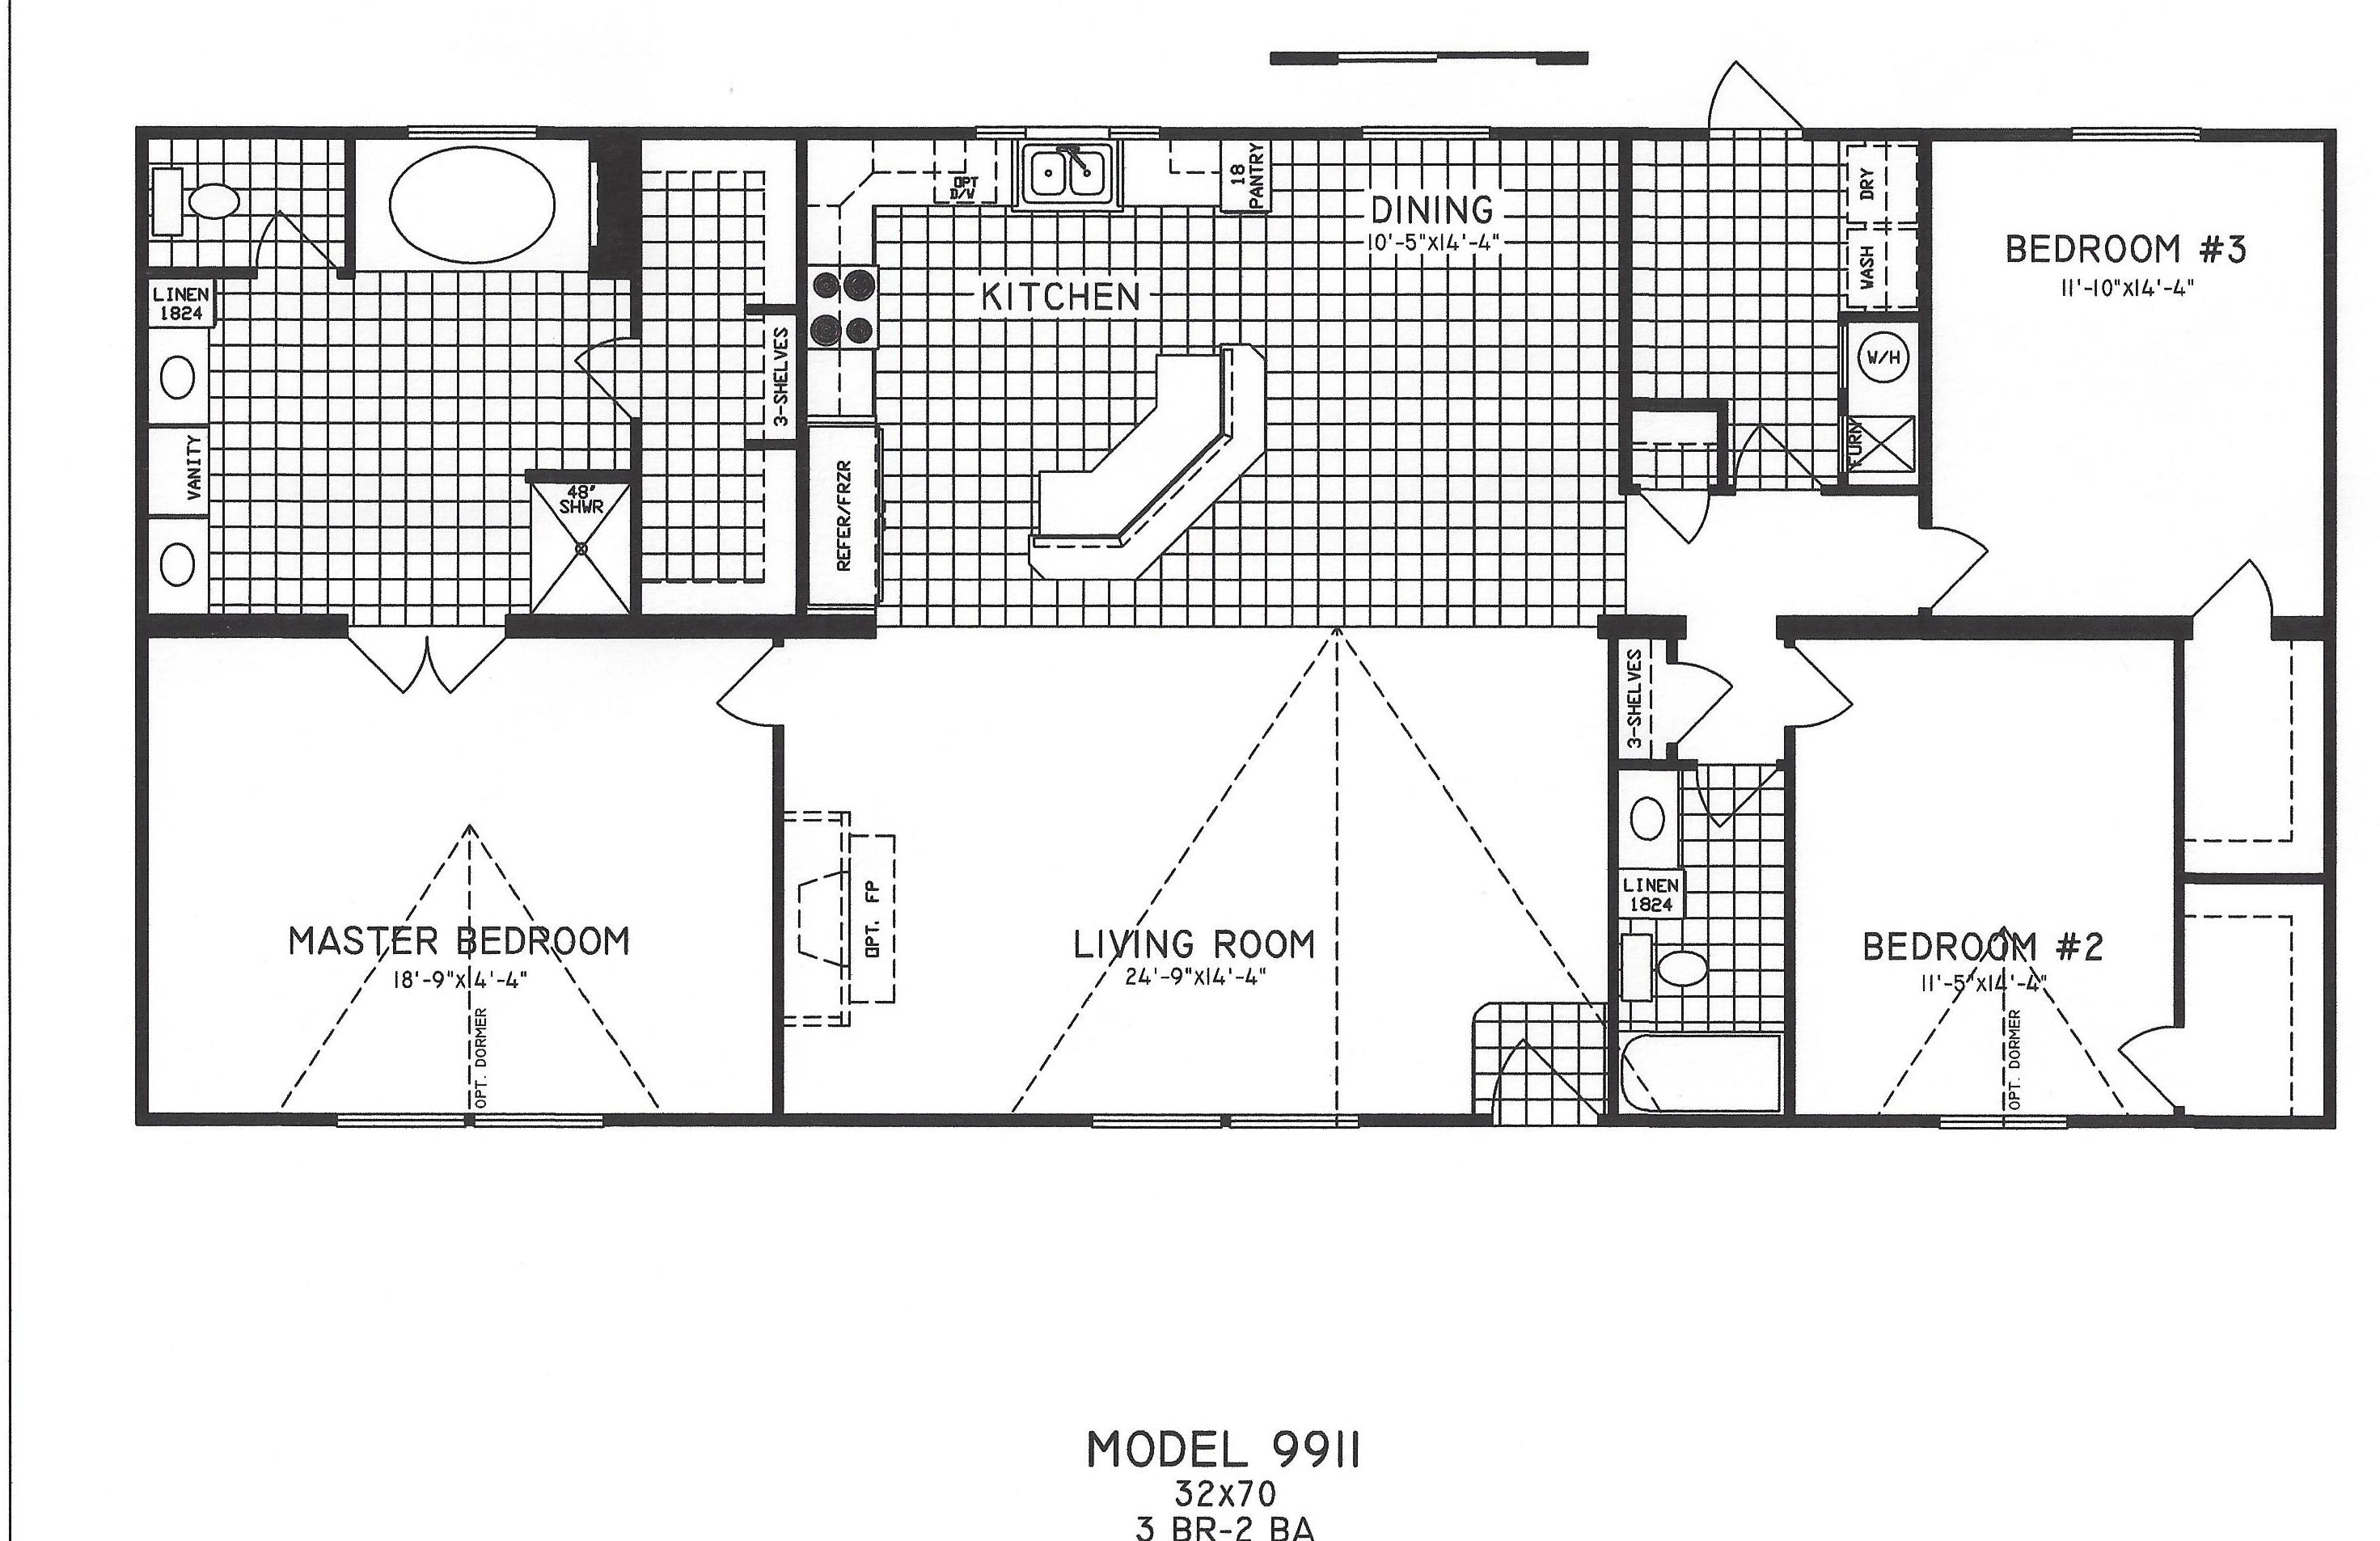 3 Bedroom Floor Plan: C-9911 - Hawks Homes | Manufactured & Modular ...